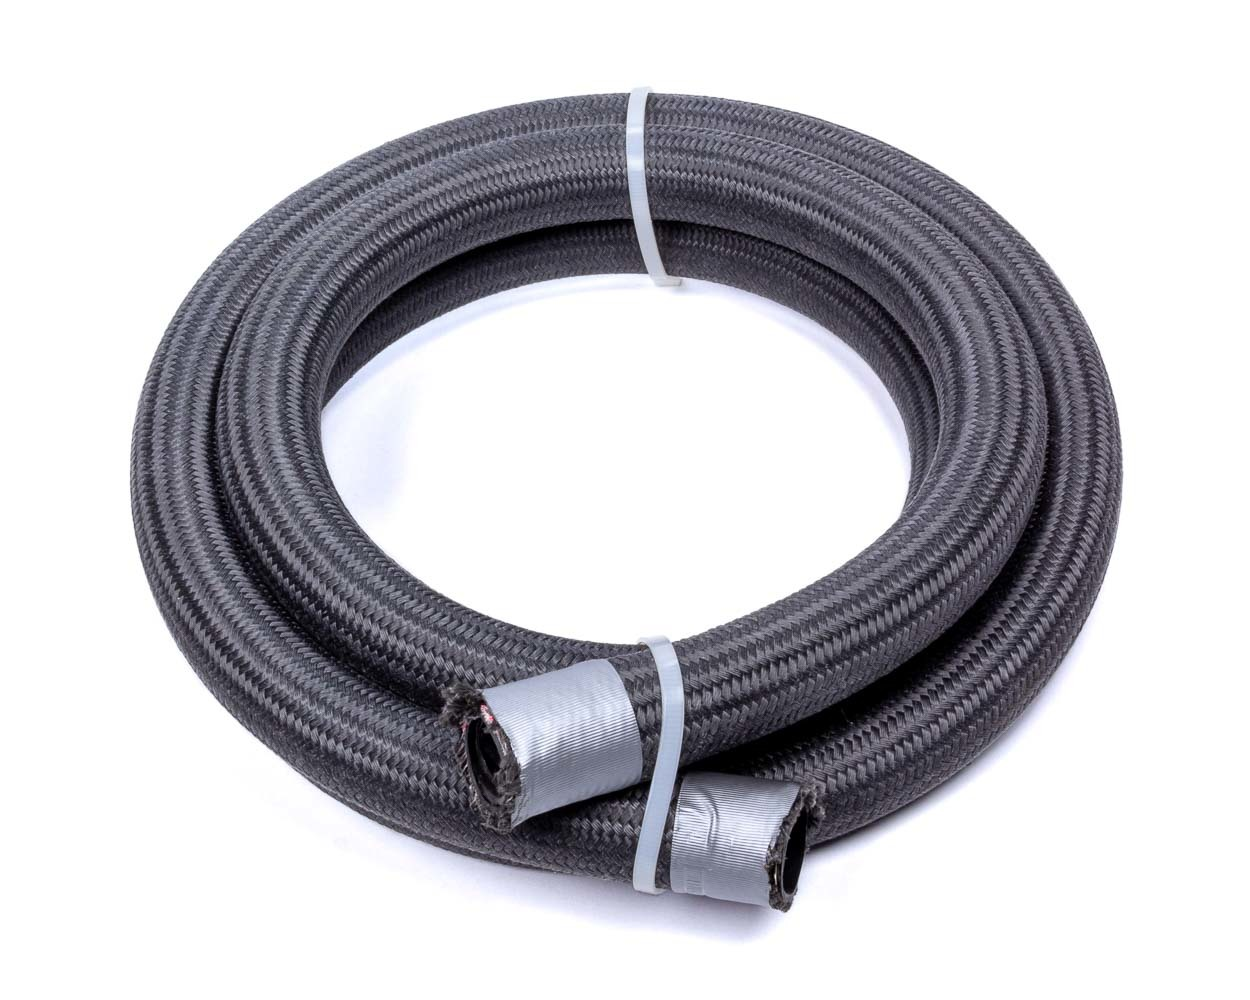 Fragola 2700612 Hose, Race-Rite, 12 AN, 6 ft, Braided Fire Retardant Fabric, PTFE, Black, Each